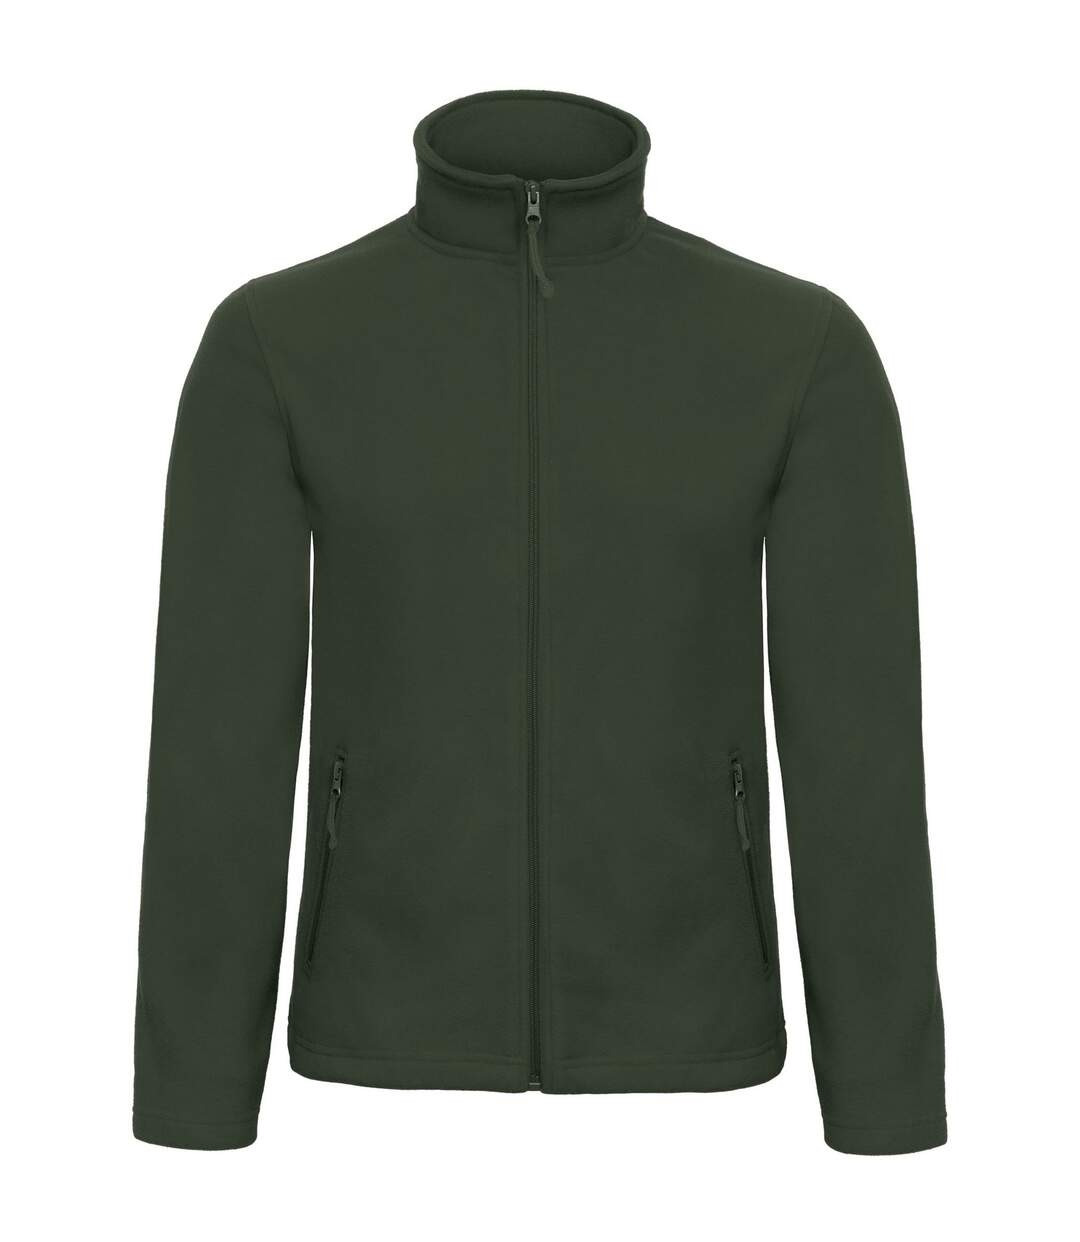 B&C Collection Mens ID 501 Microfleece Jacket (Forest Green) - UTRW3527